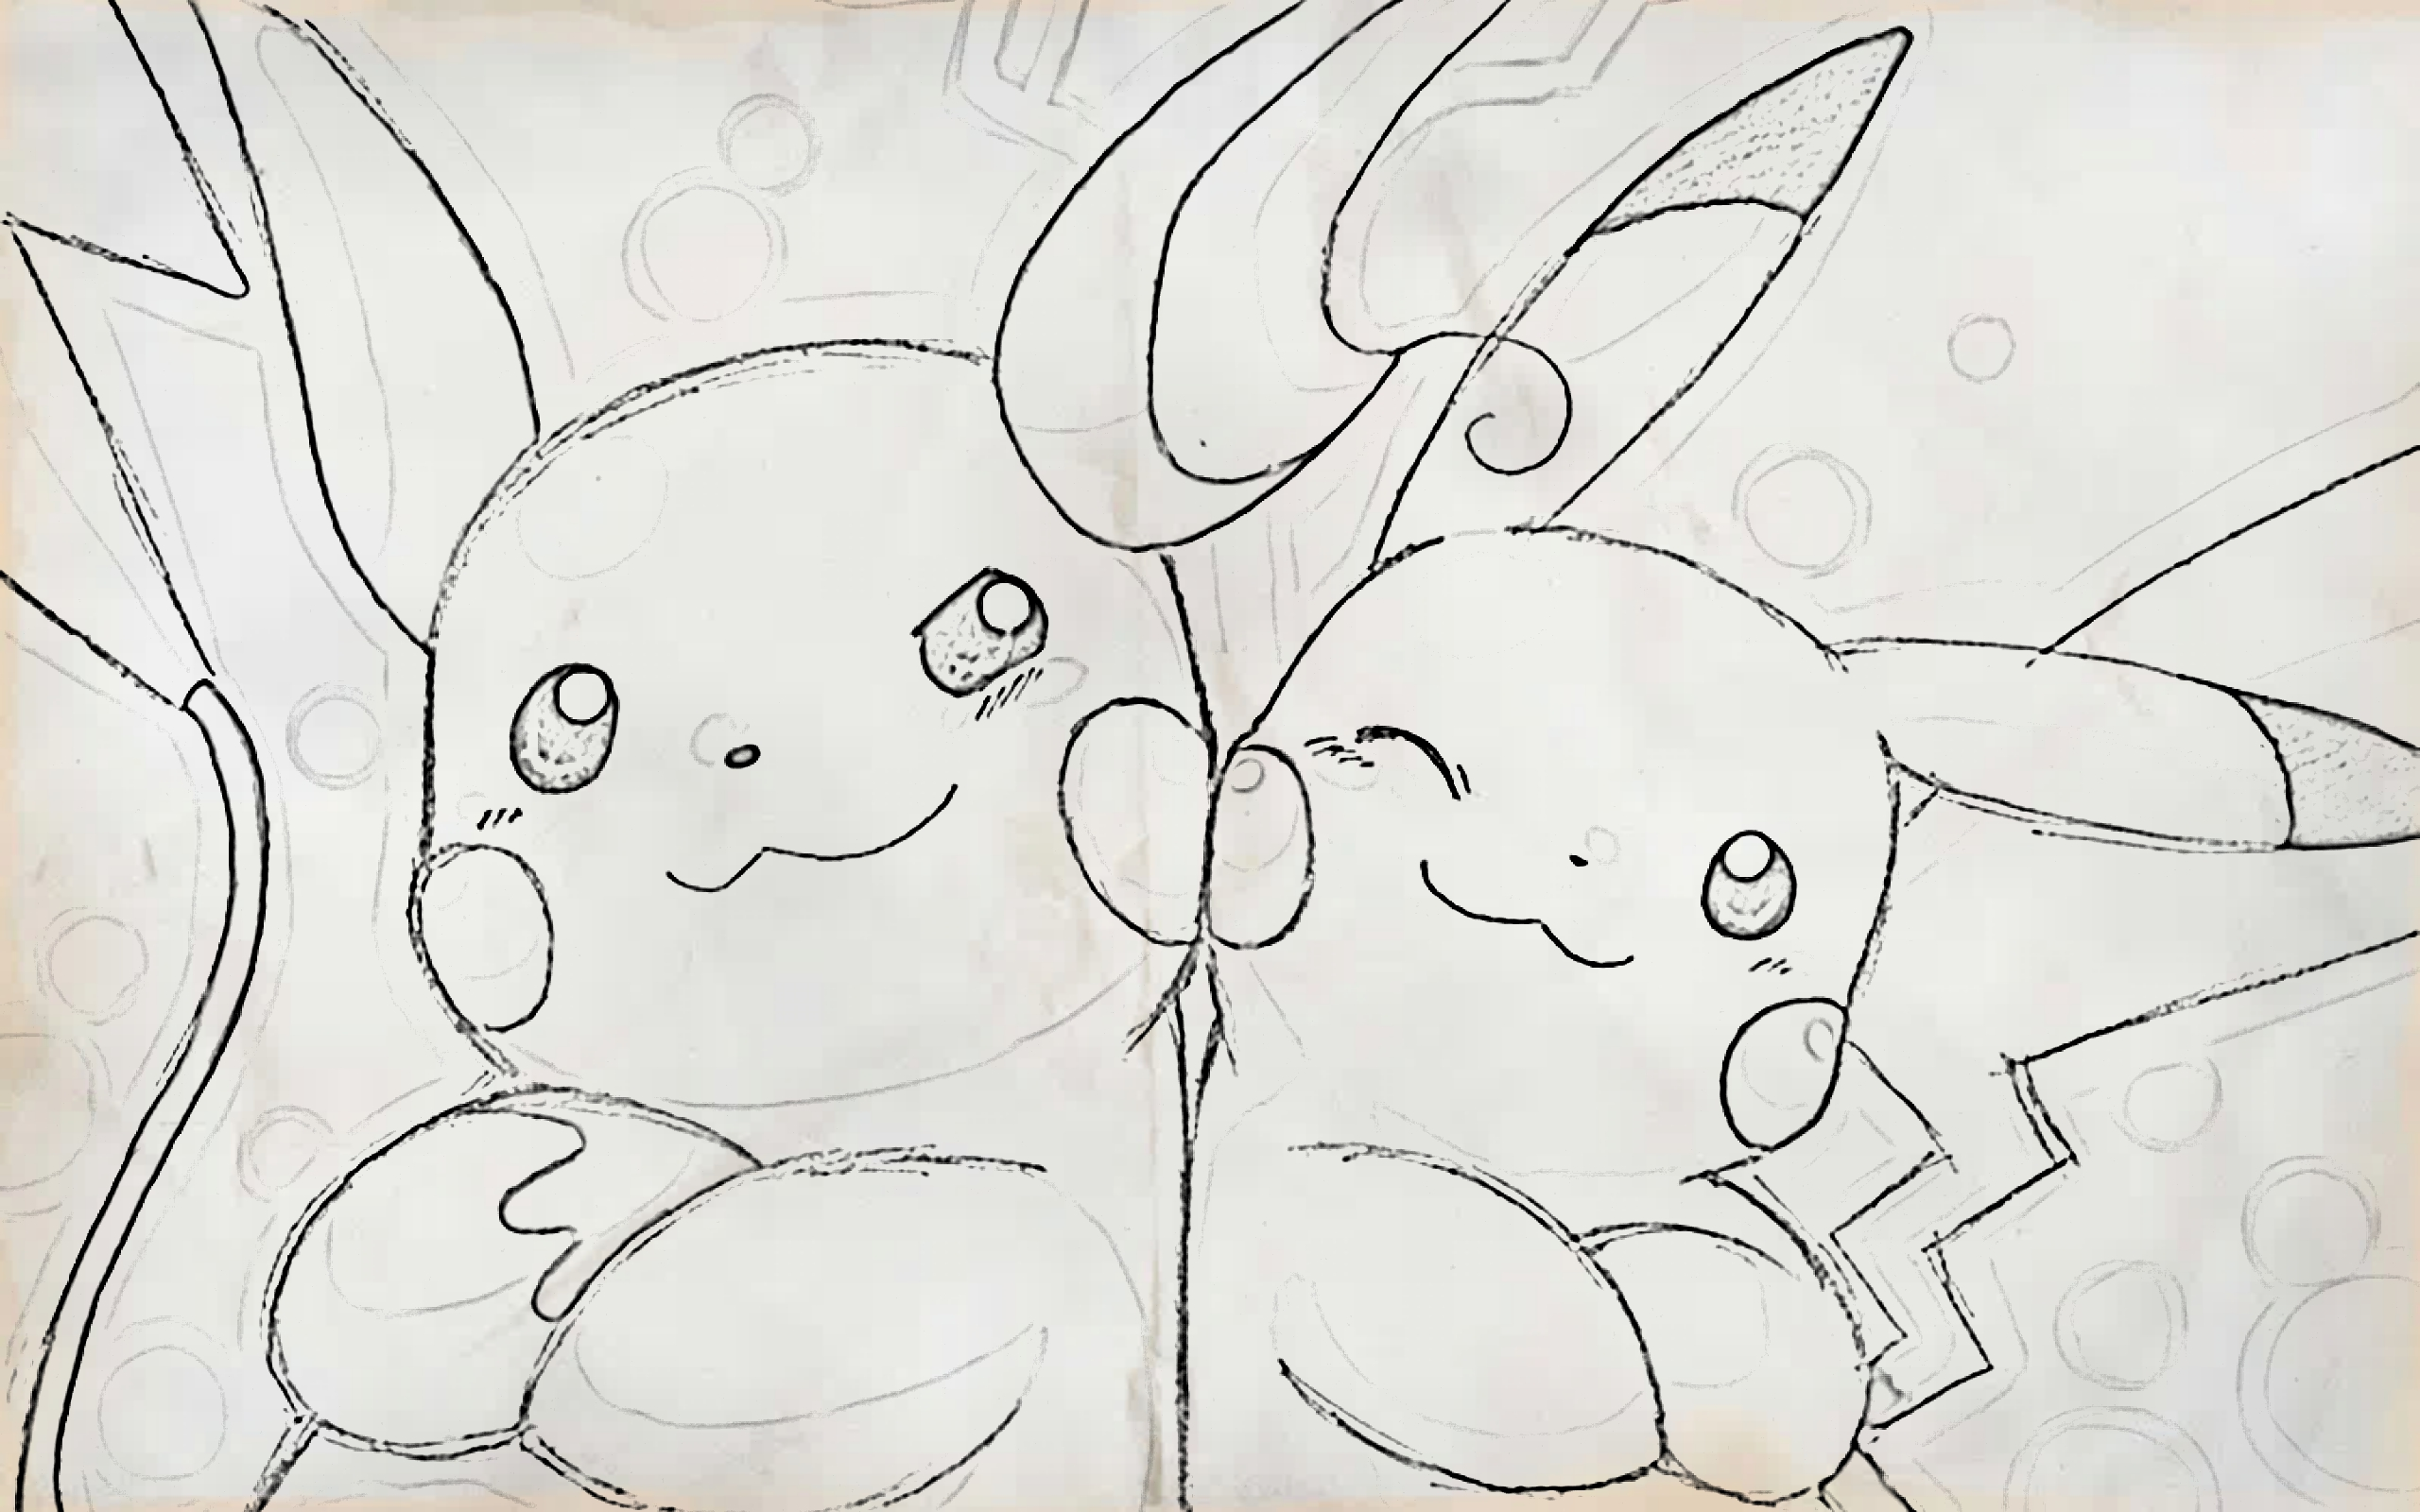 pikachu and raichu by awkward zombie fan on deviantart